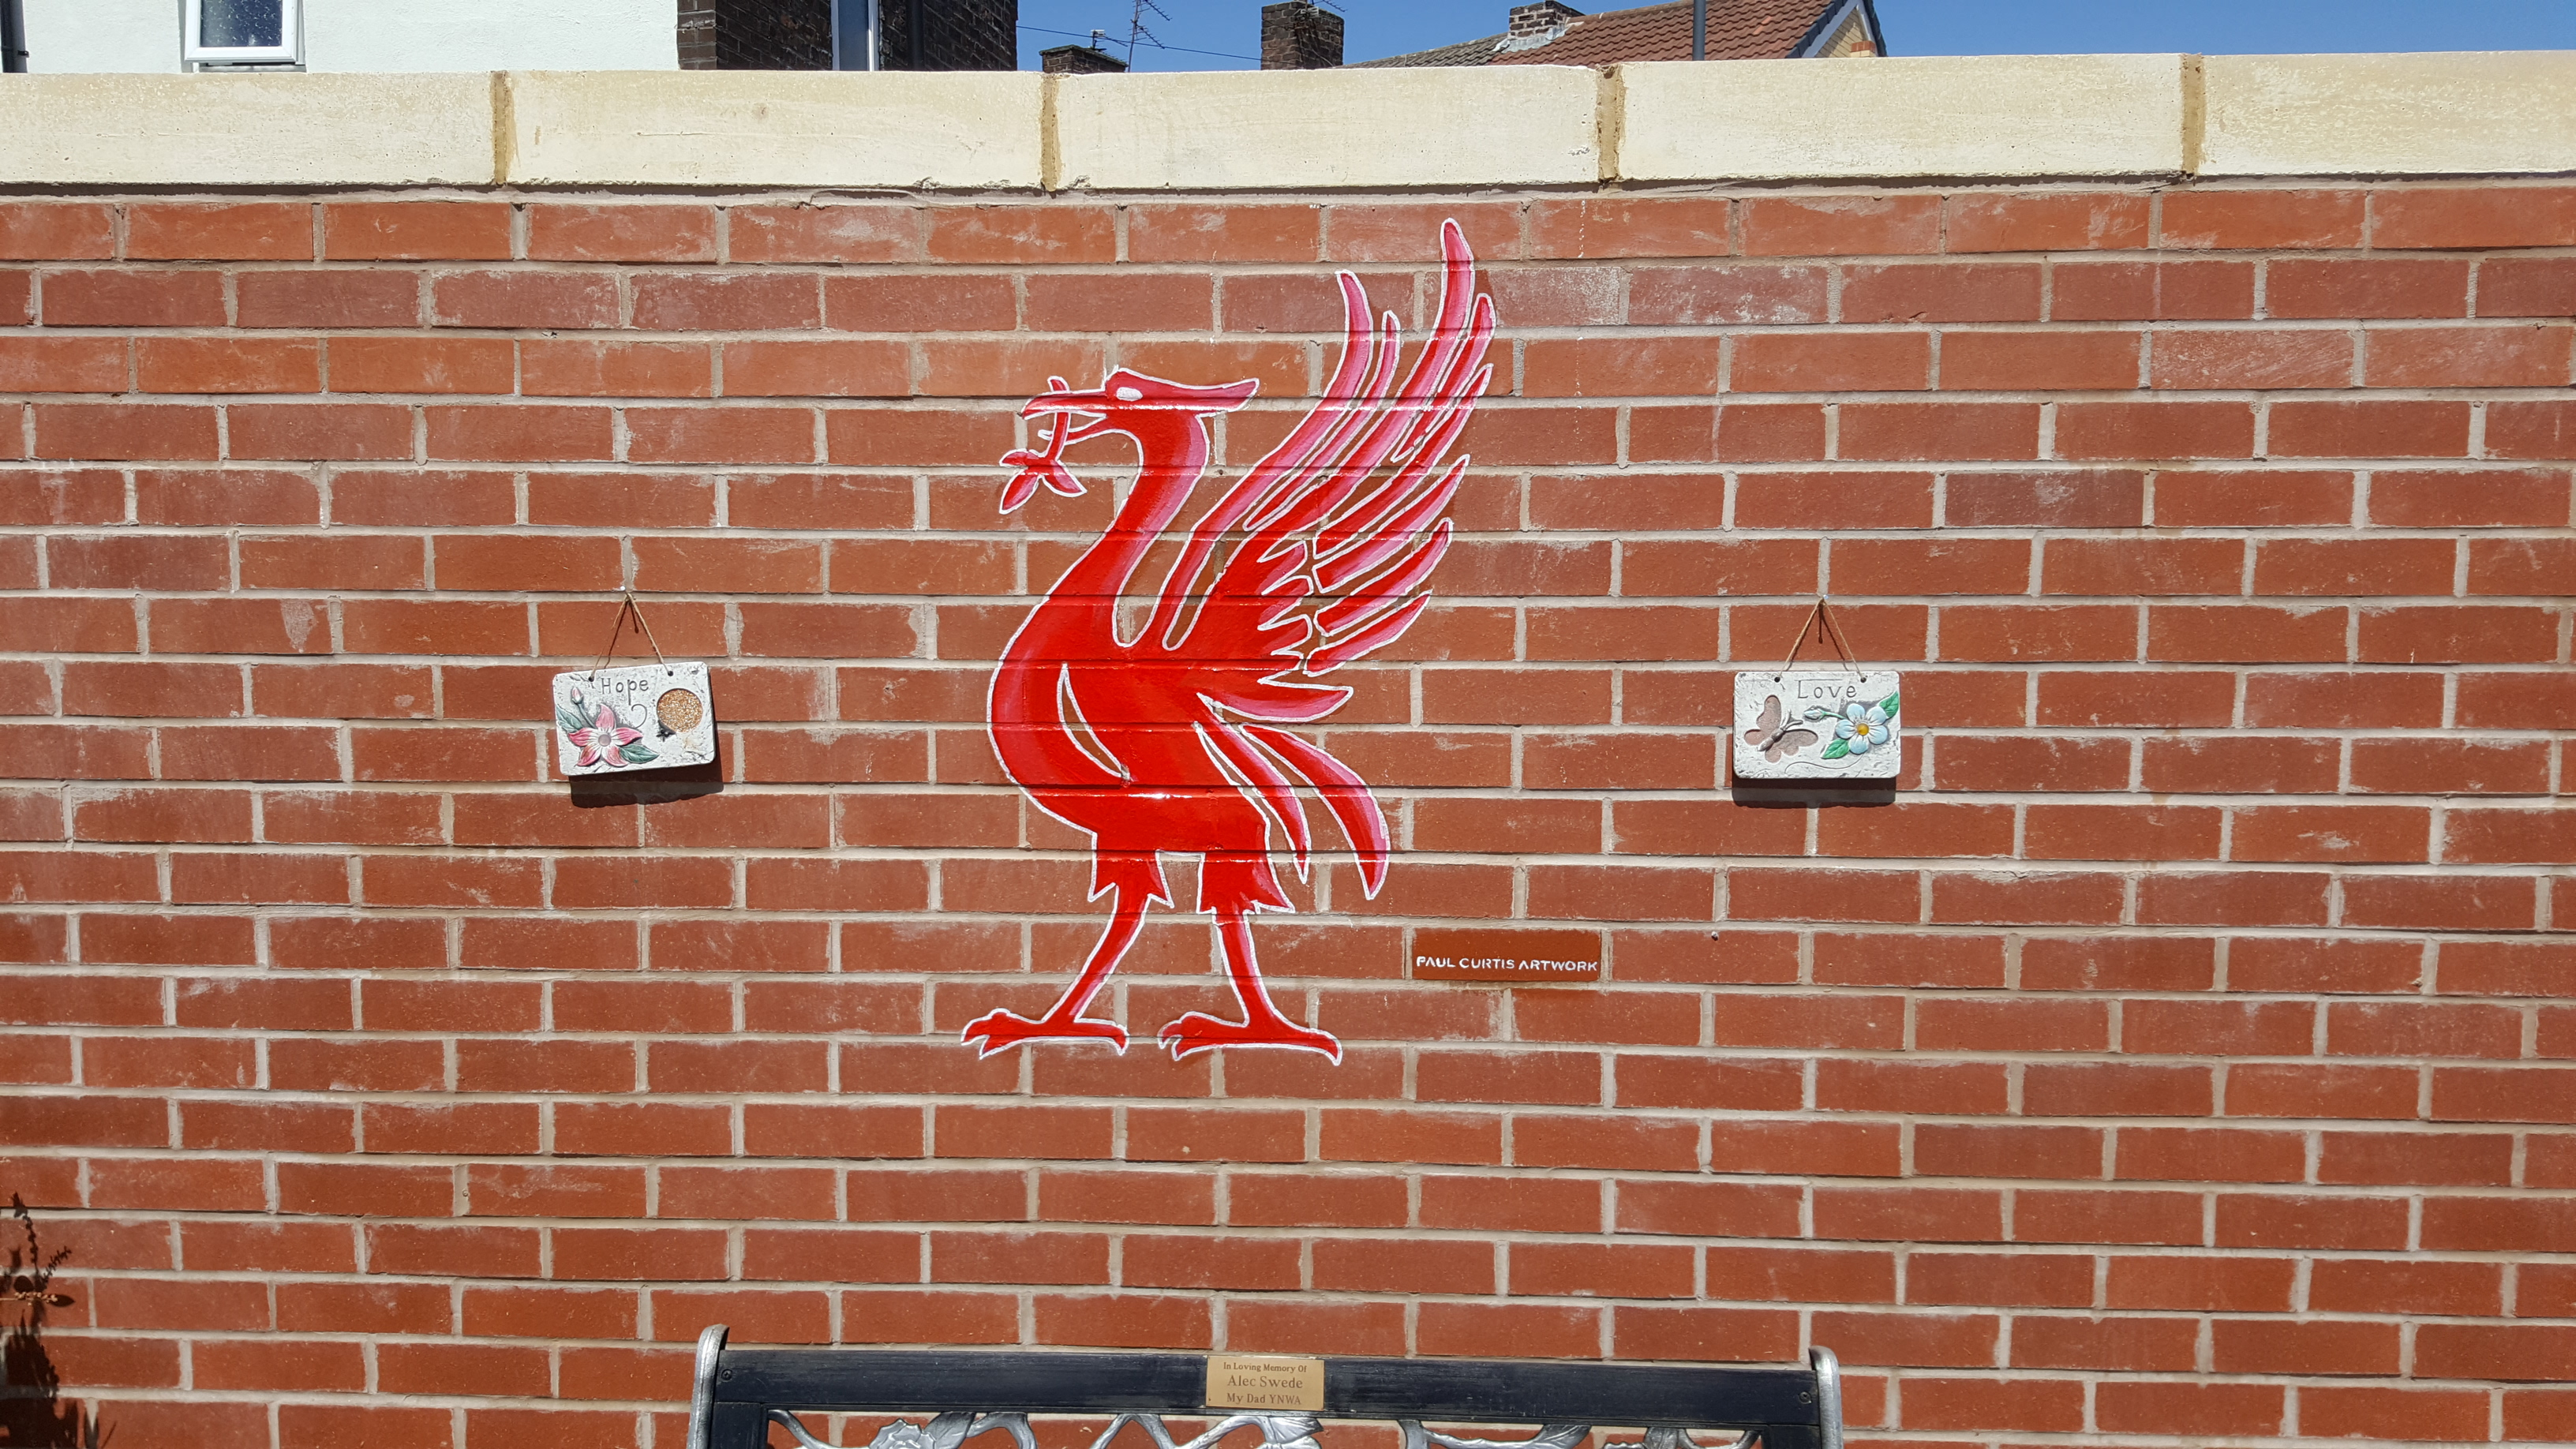 A red liverbird